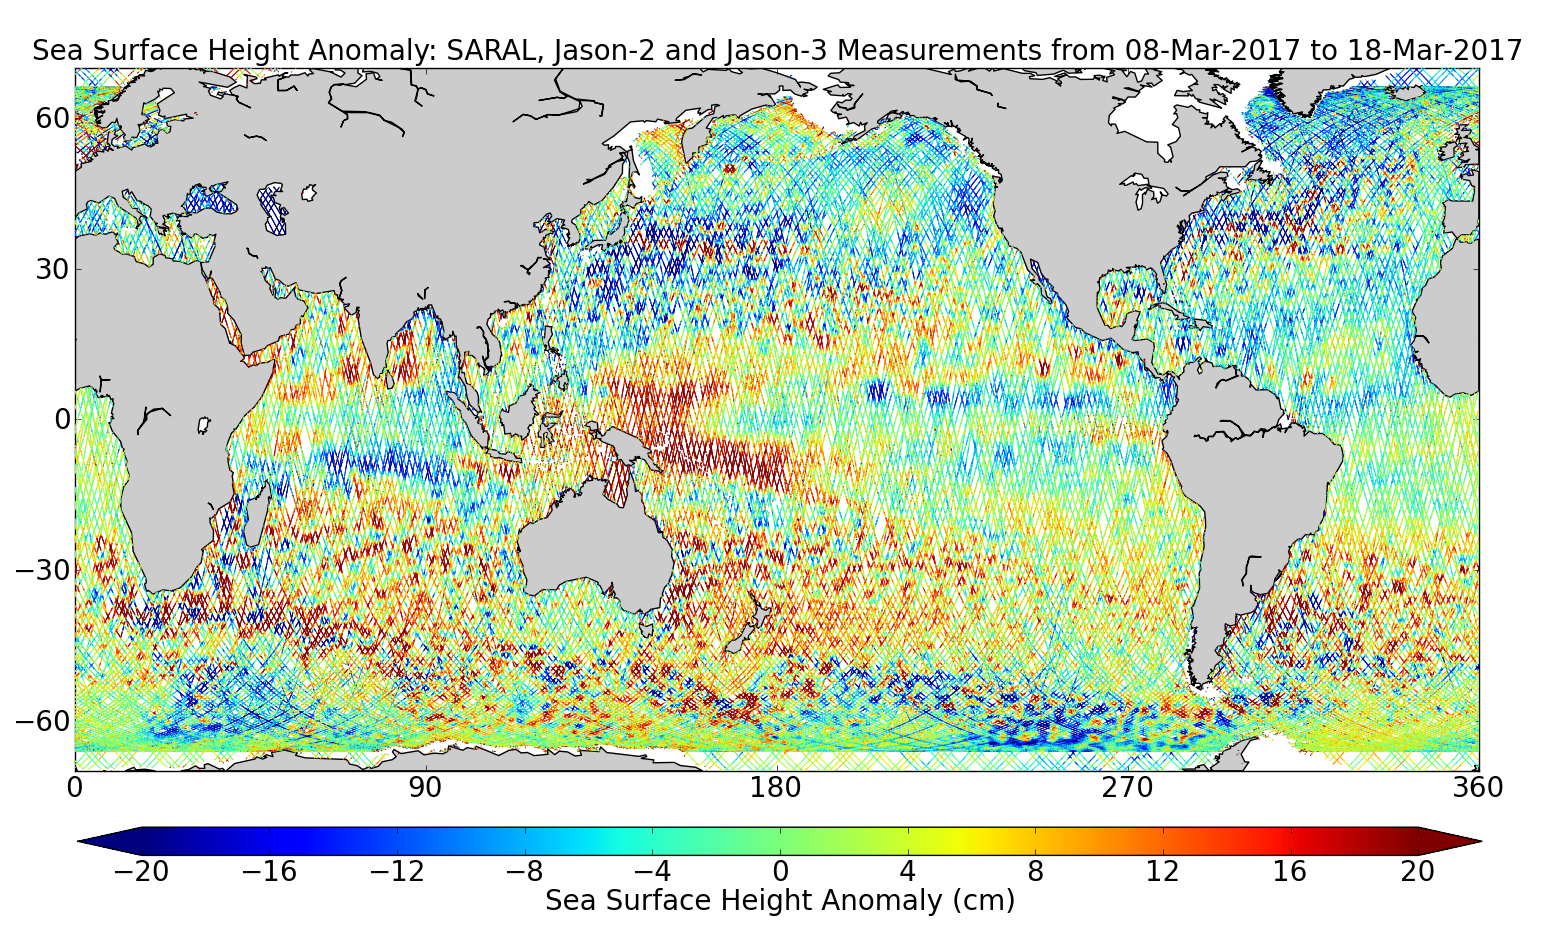 Sea Surface Height Anomaly: SARAL, Jason-2 and Jason-3 Measurements from 08-Mar-2017 to 18-Mar-2017